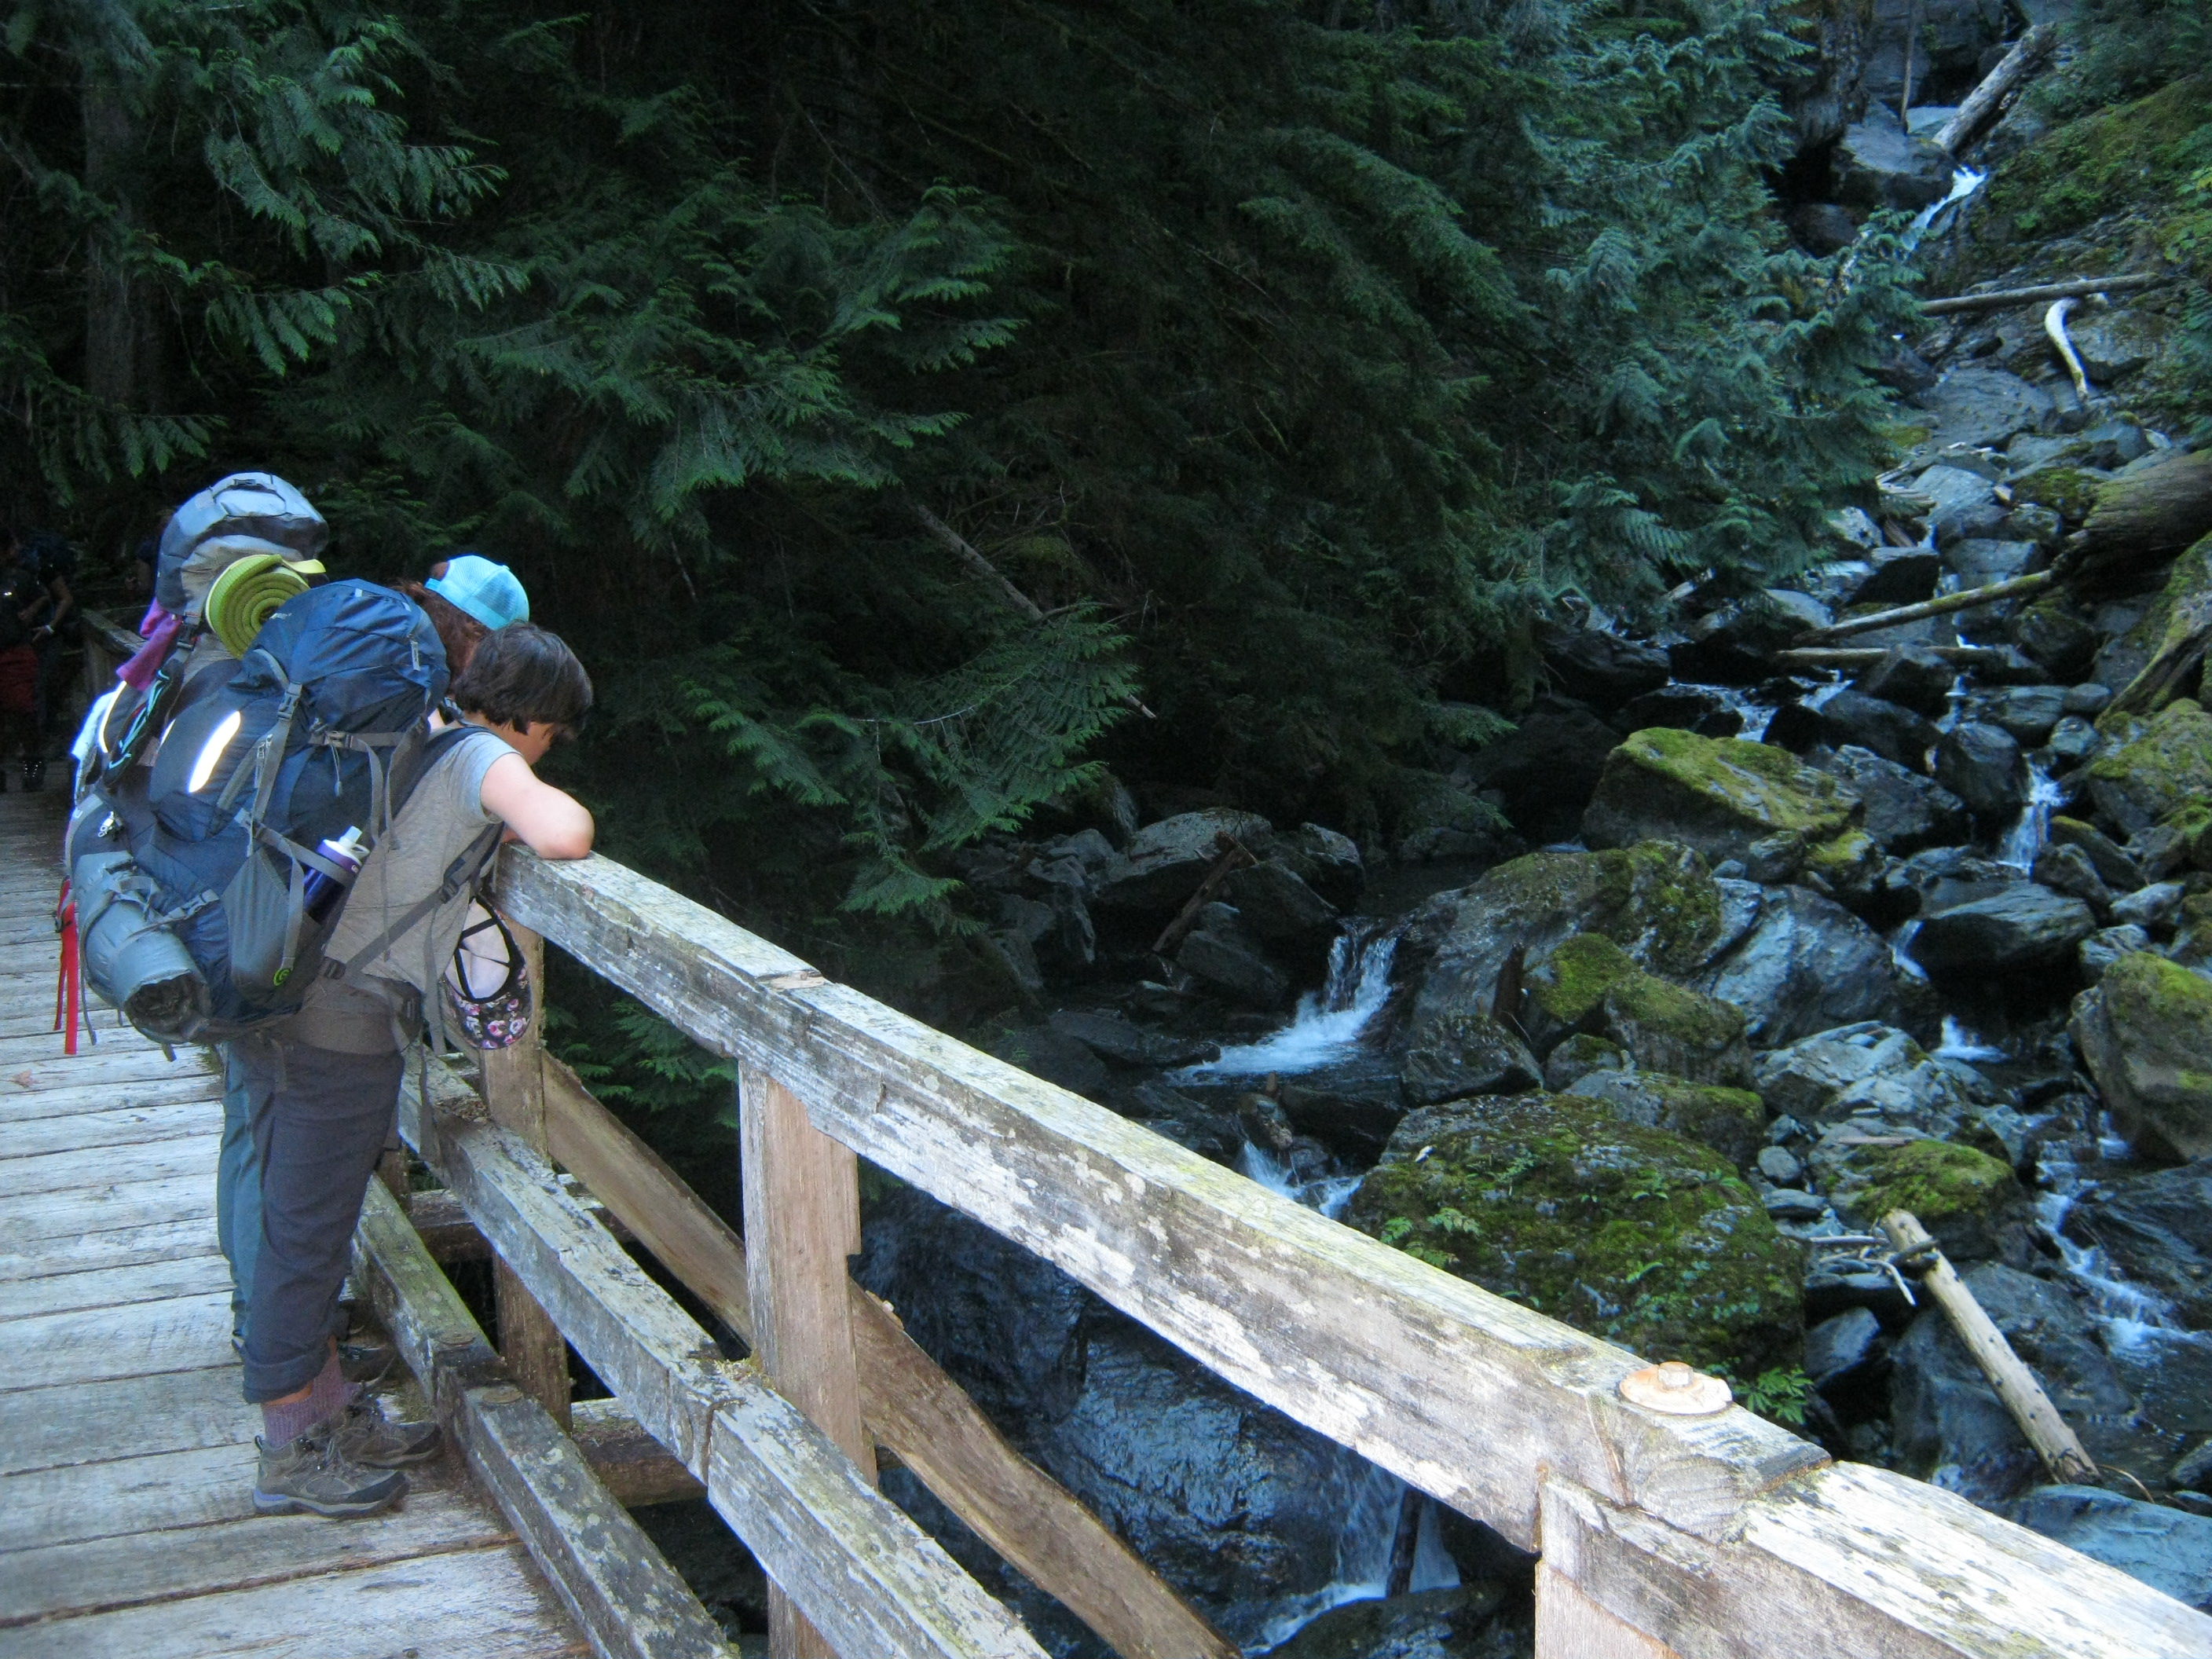 Two students with hiking backpacks on looking over the railing of a bridge at a stream below